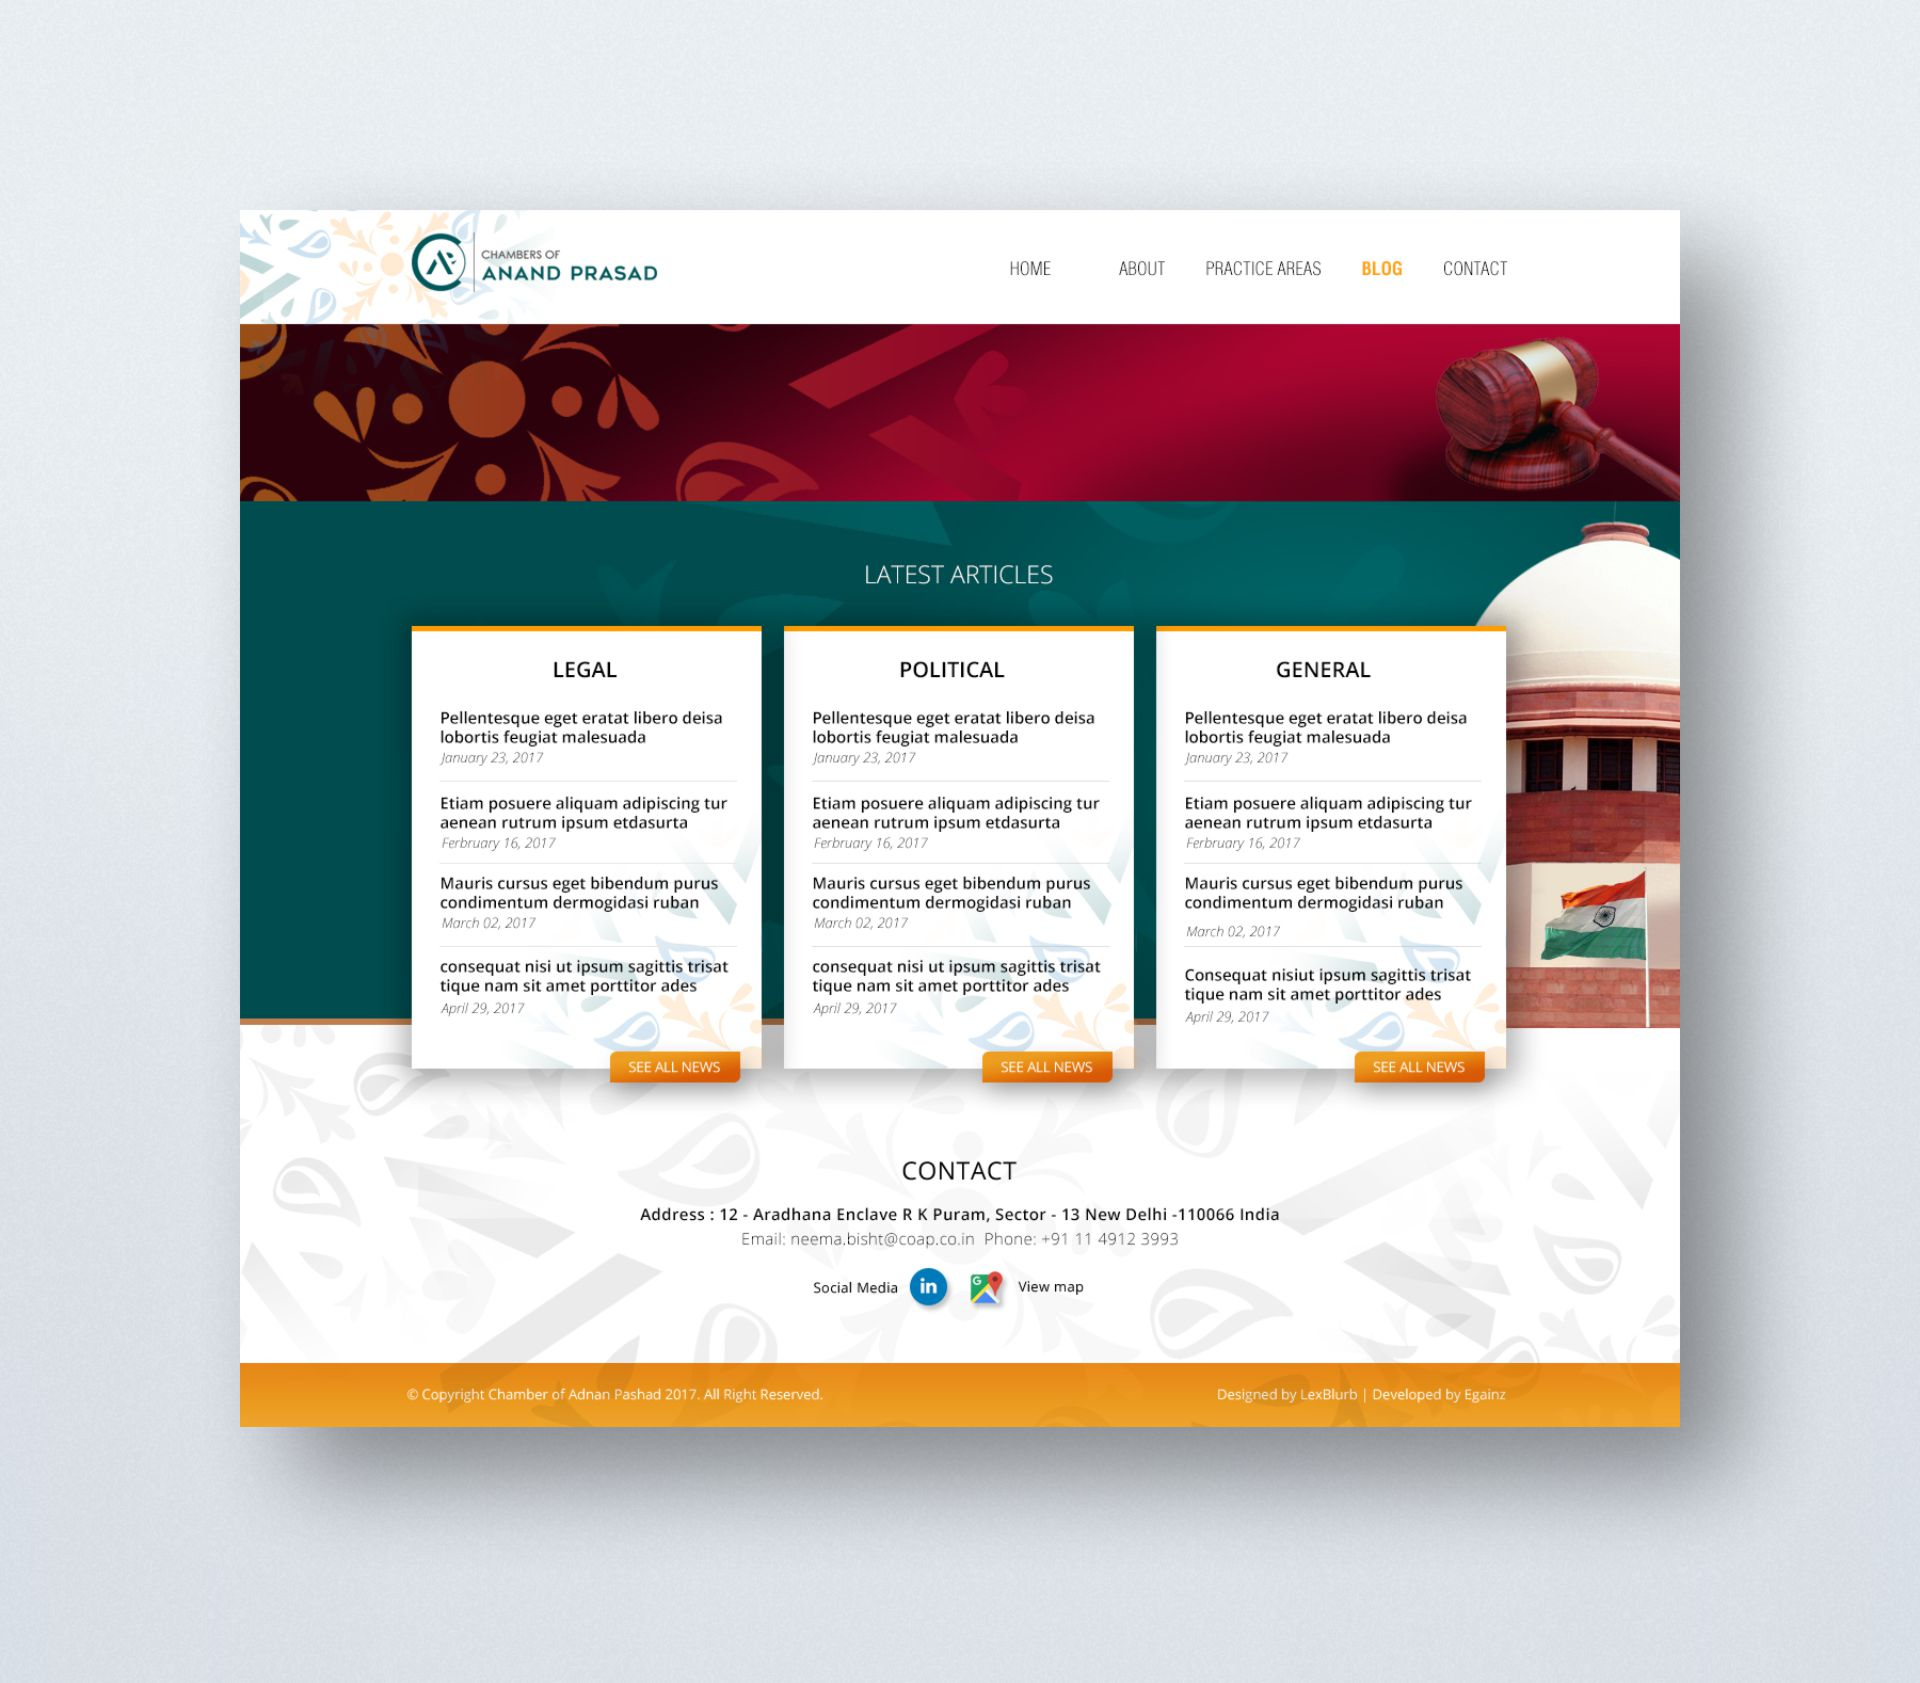 Chambers of Anand Prasad - Website Design - Home